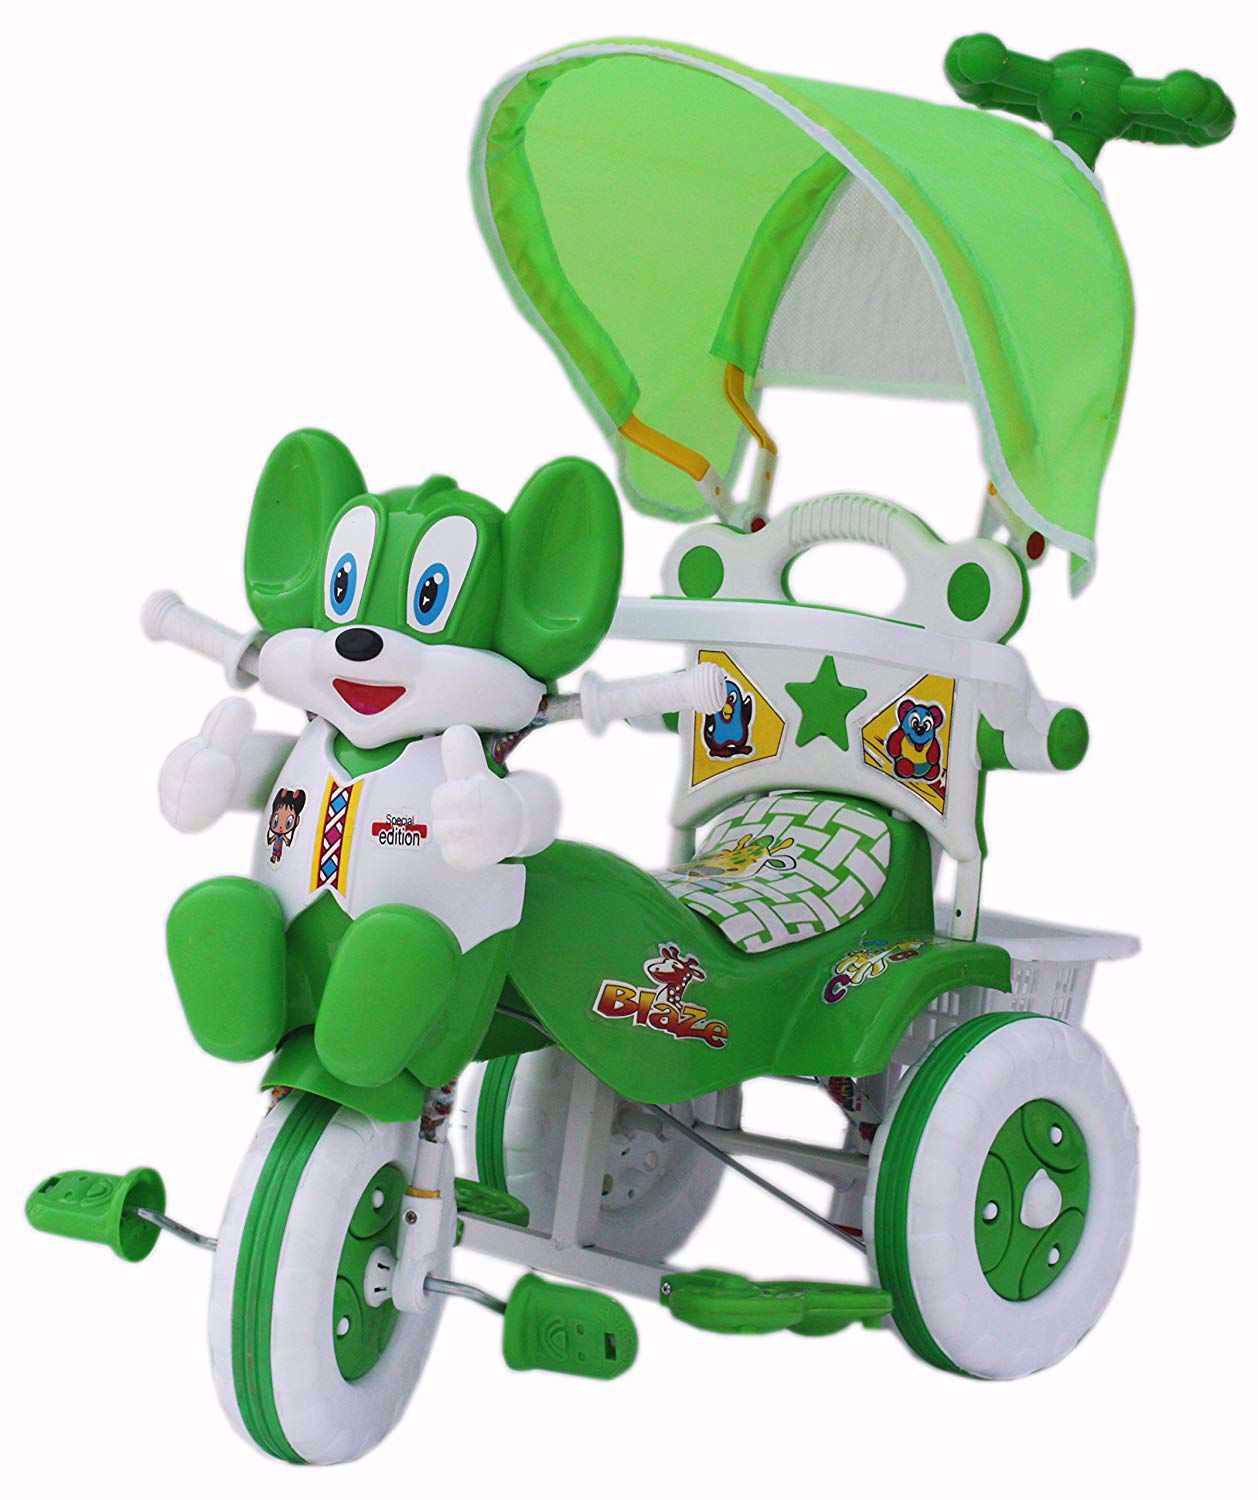 Parental Tricycle Green